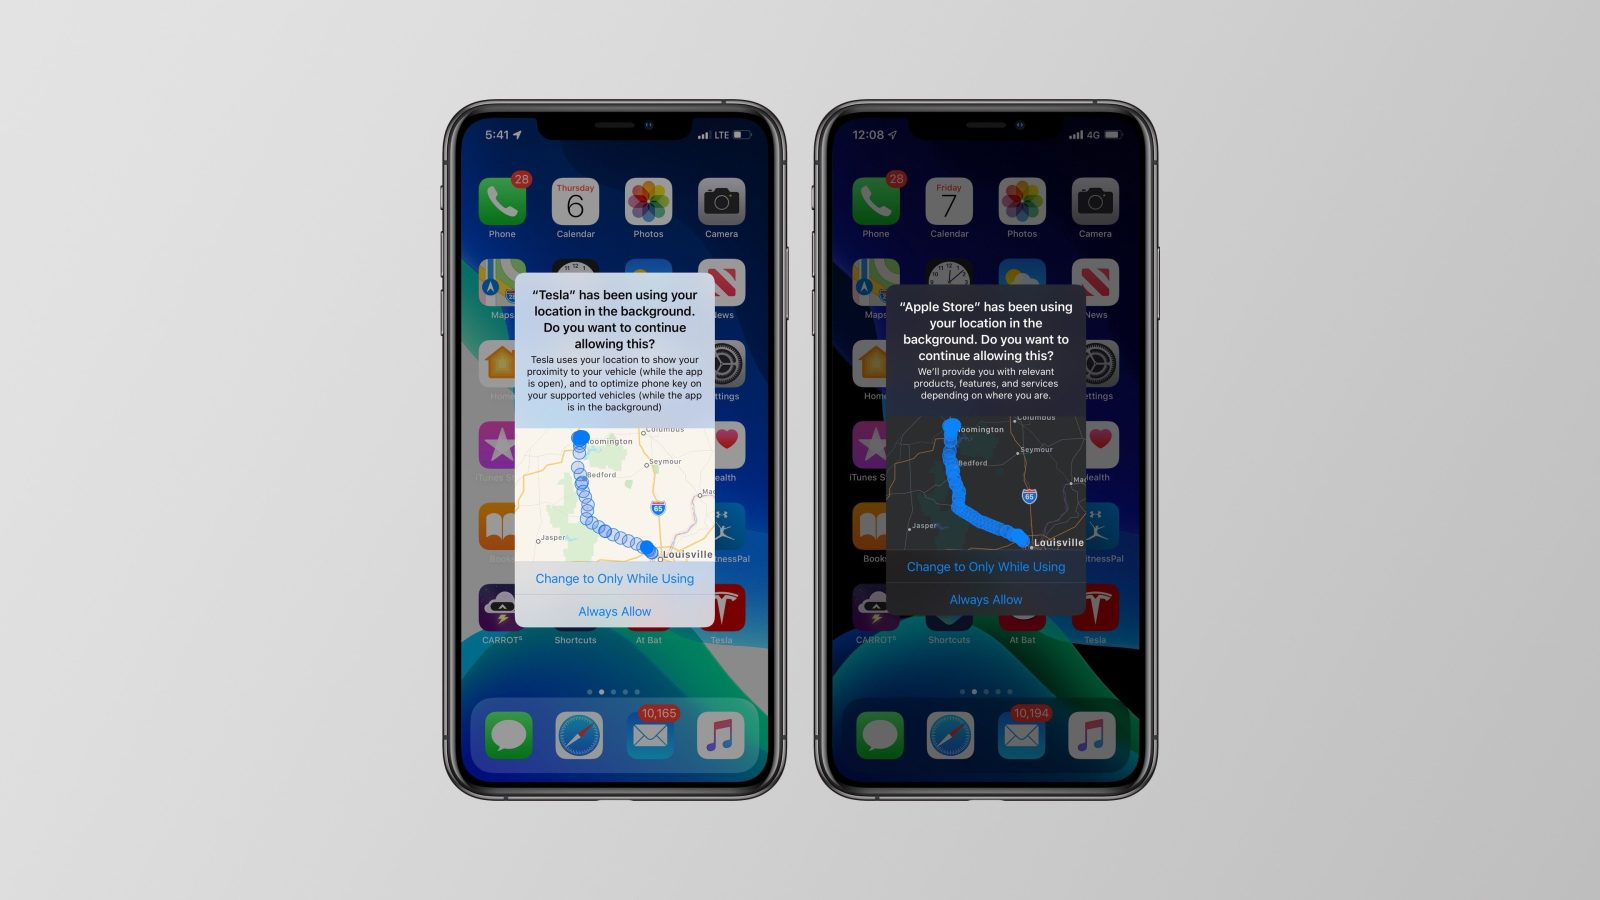 Facebook explains iOS 13 location popups to users - 9to5Mac